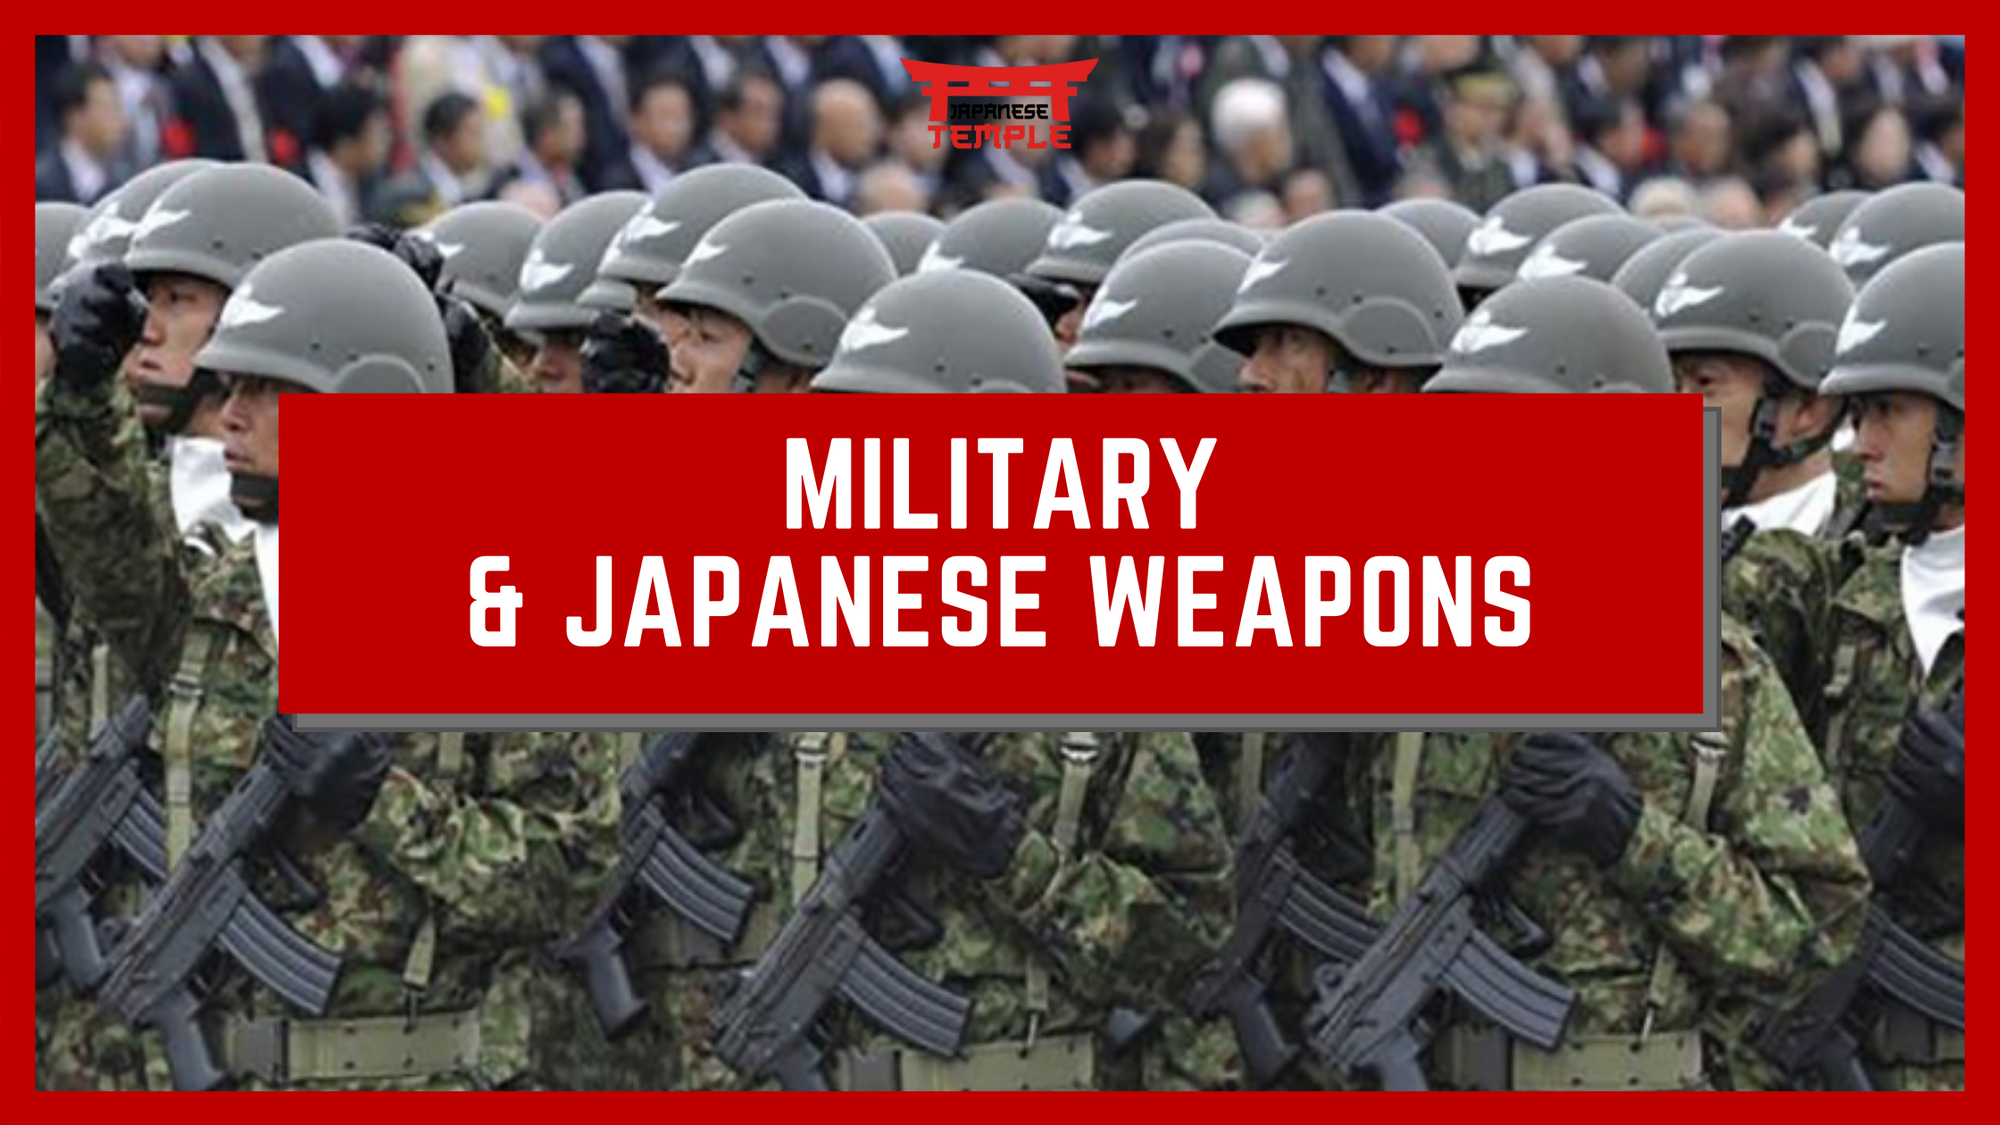 Military & Japanese Weapons